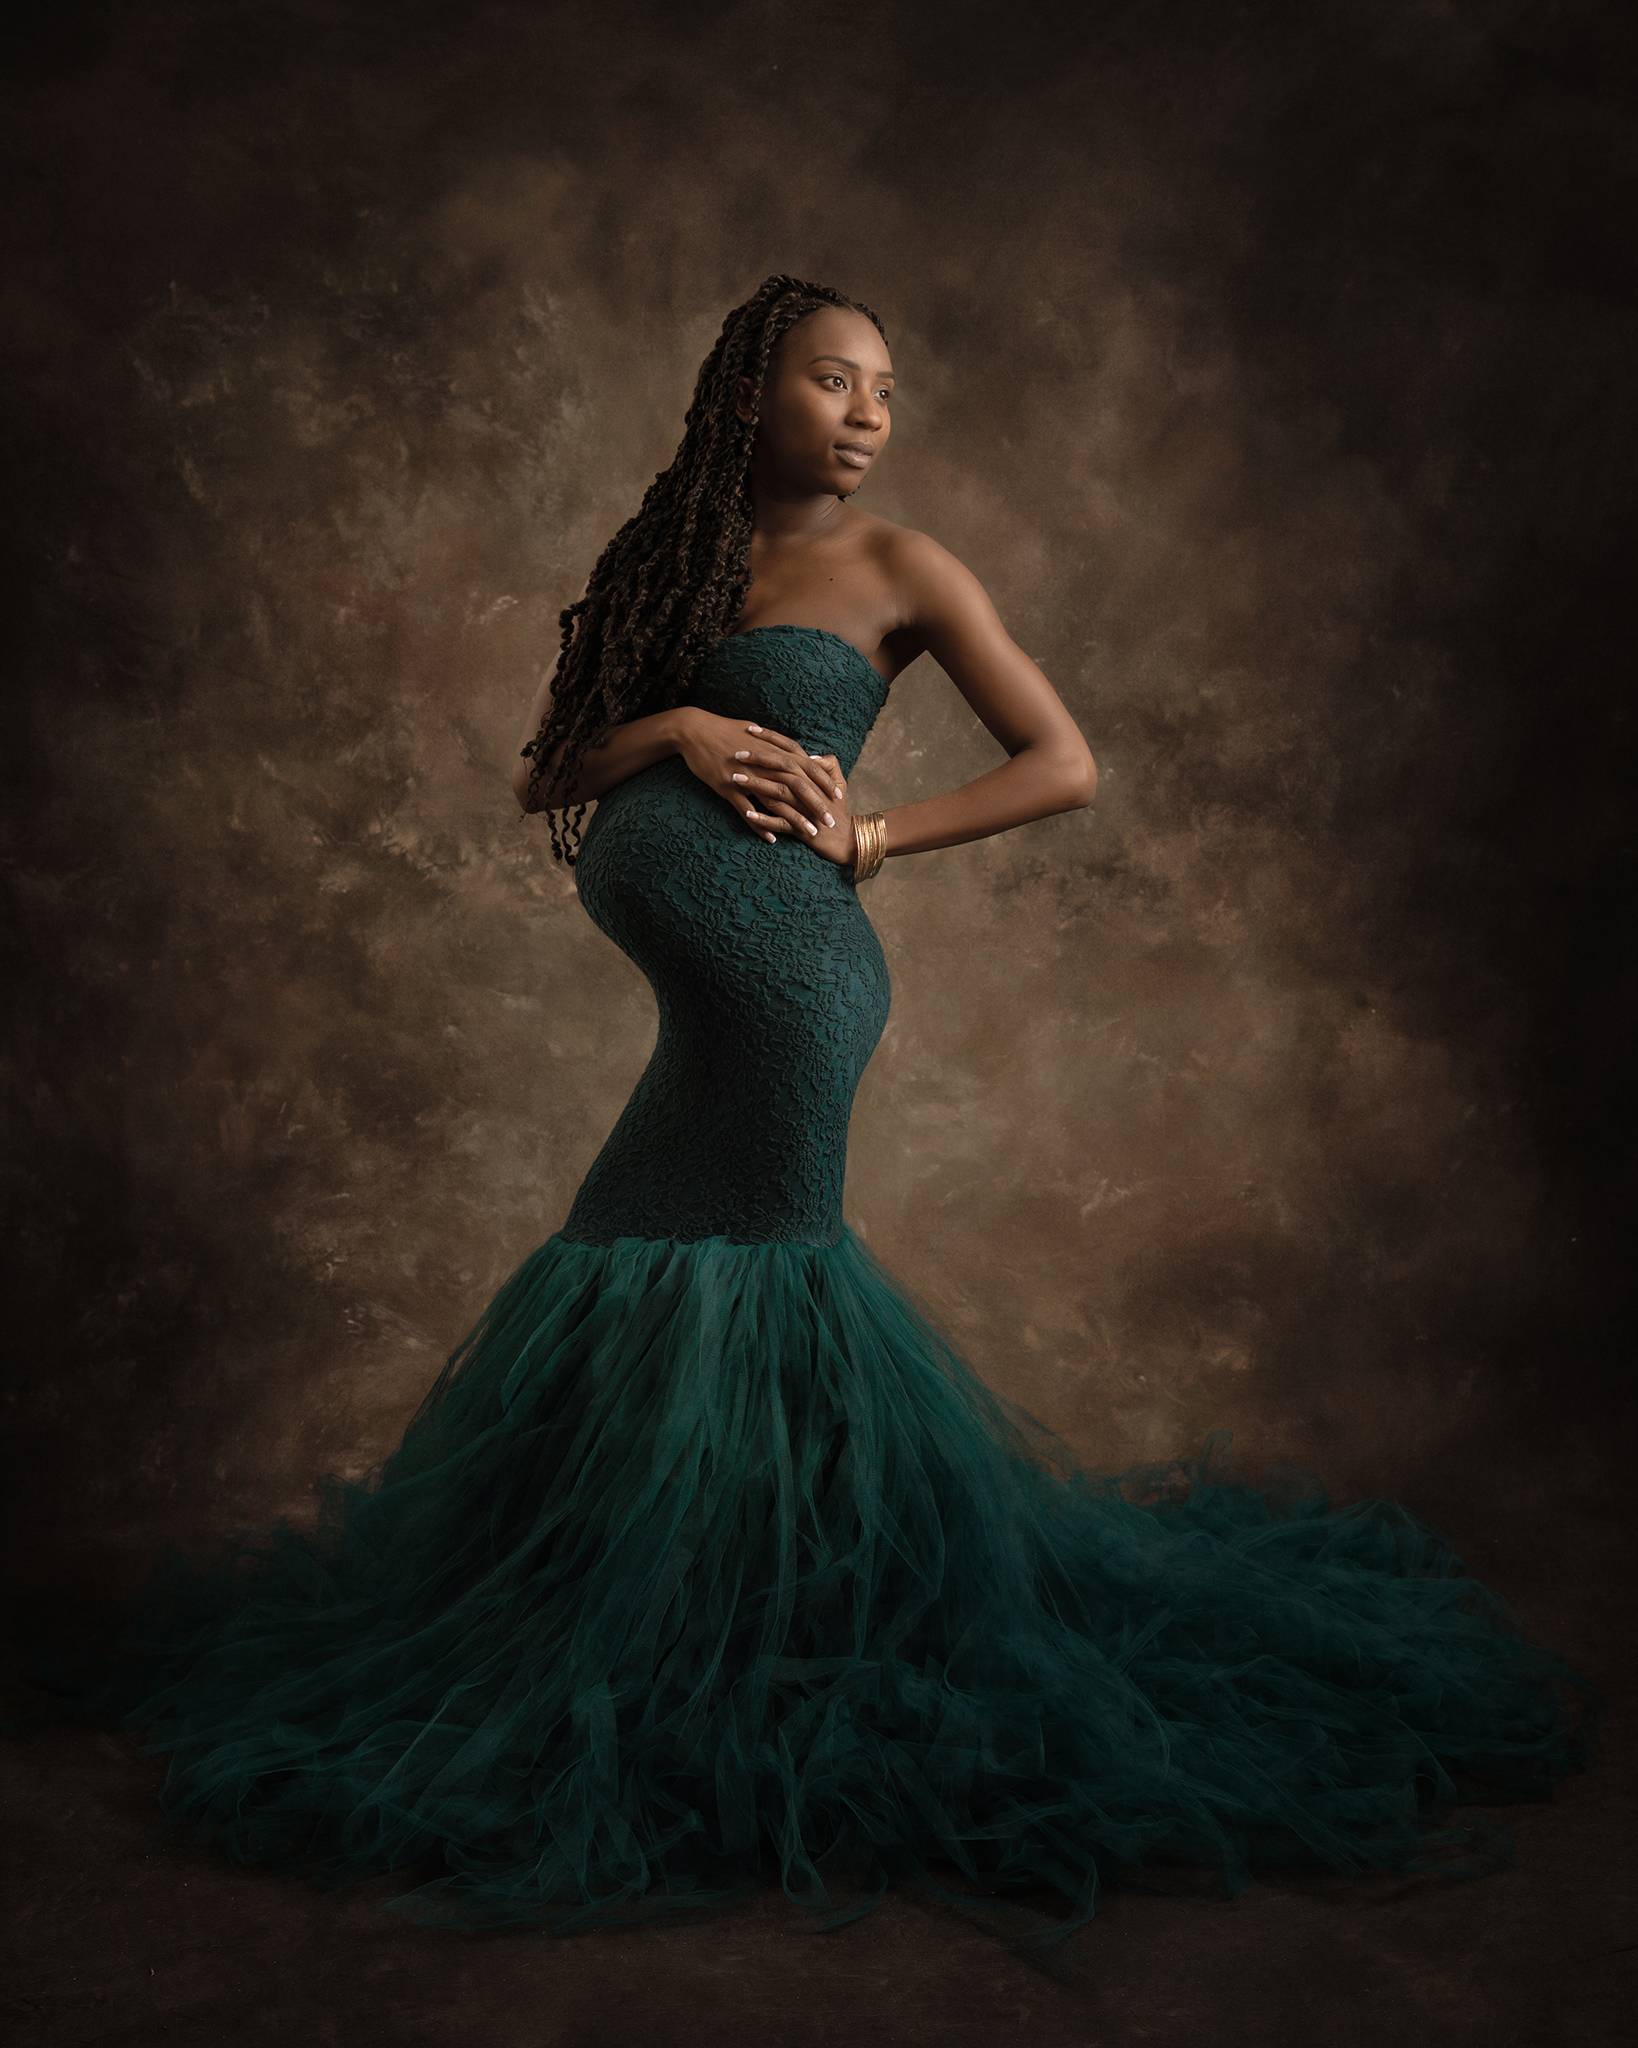 pregnant model in green dress by Portrait photographer Preston